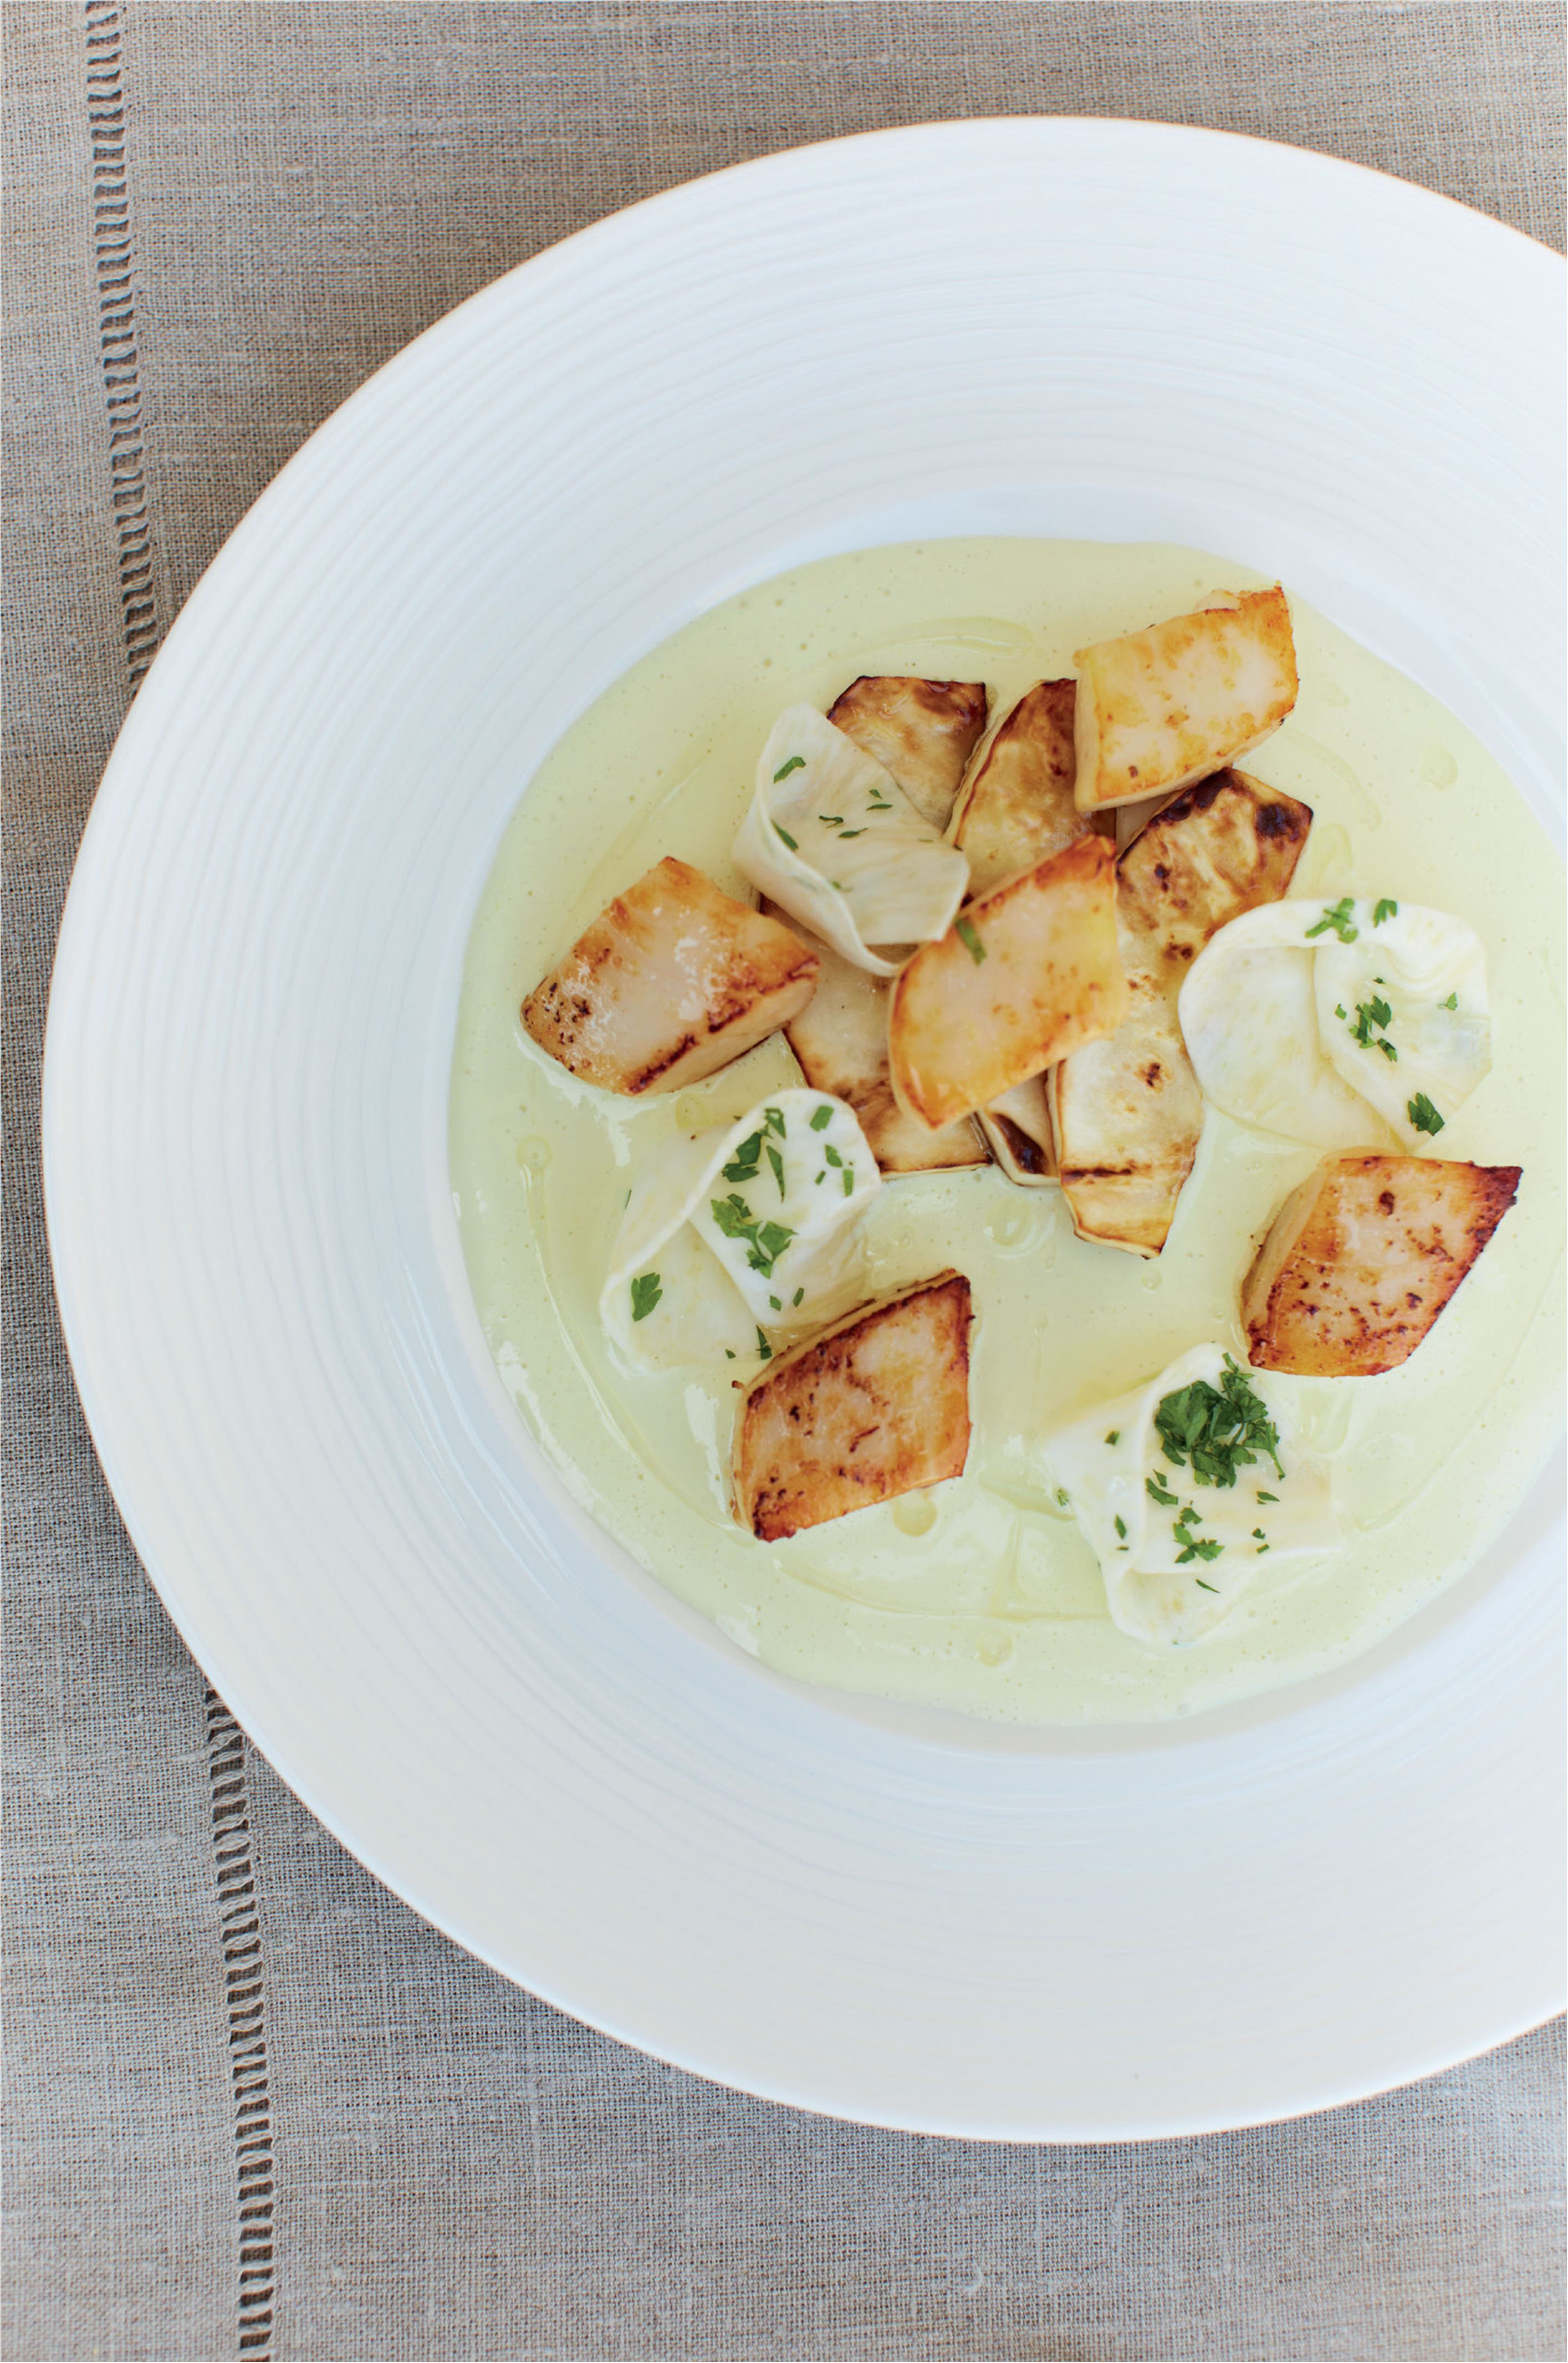 Scallops with celeriac and apple, cider and mustard sauce